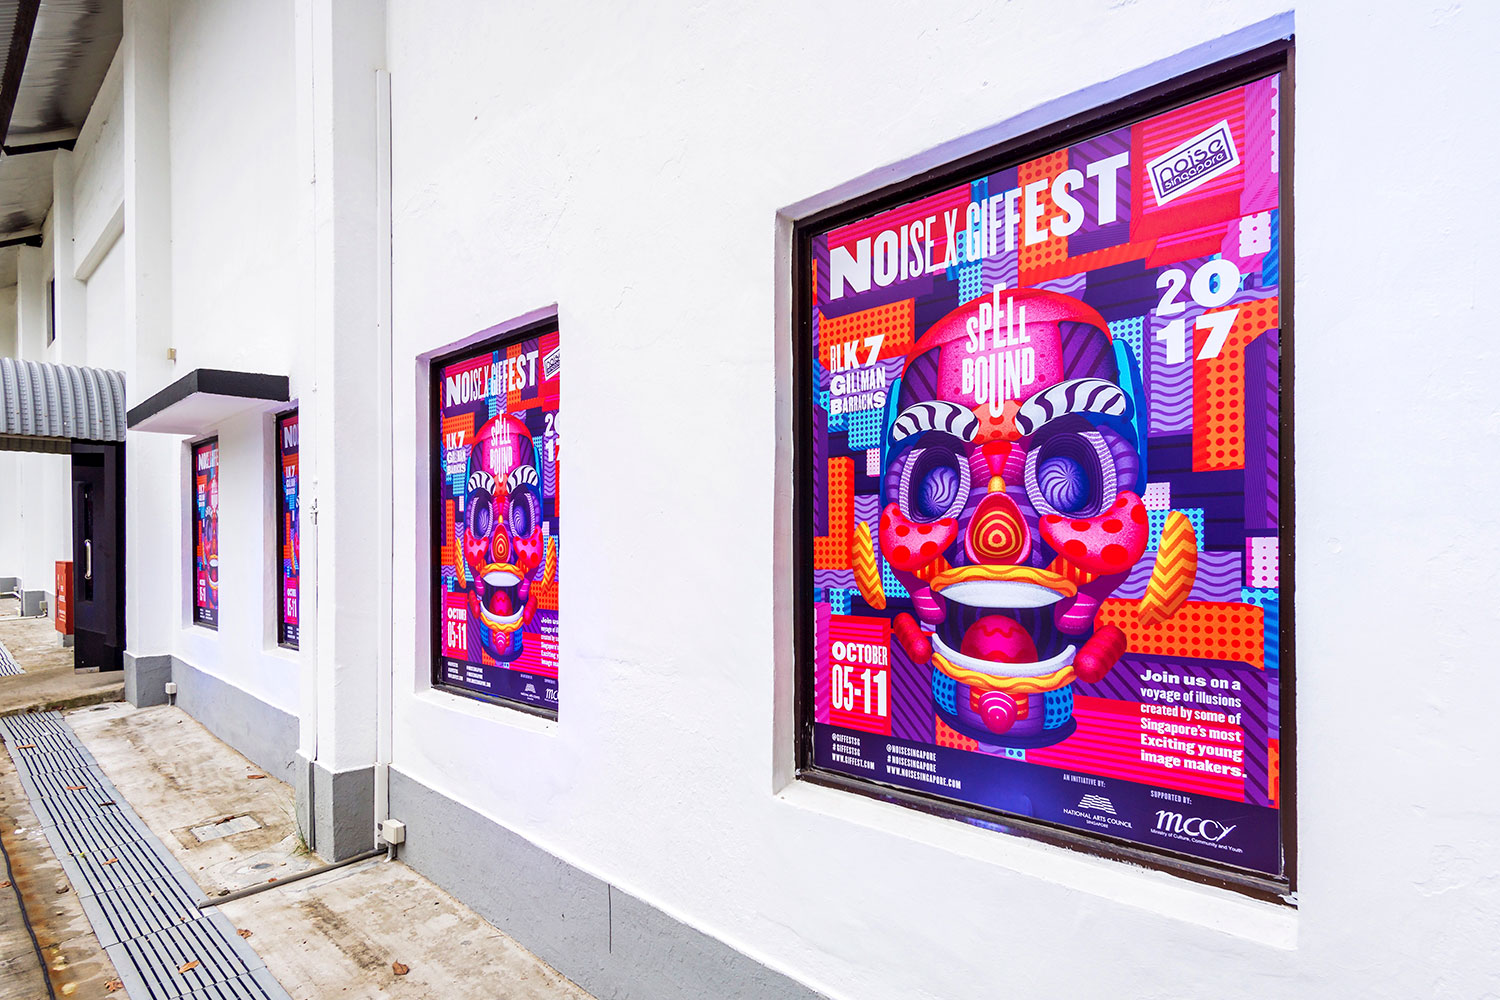 GIF Fest SG branding identity - Exhibition posters on the exterior of the event venue at Gillman Barracks, Singapore. Photography by BÜRO UFHO.